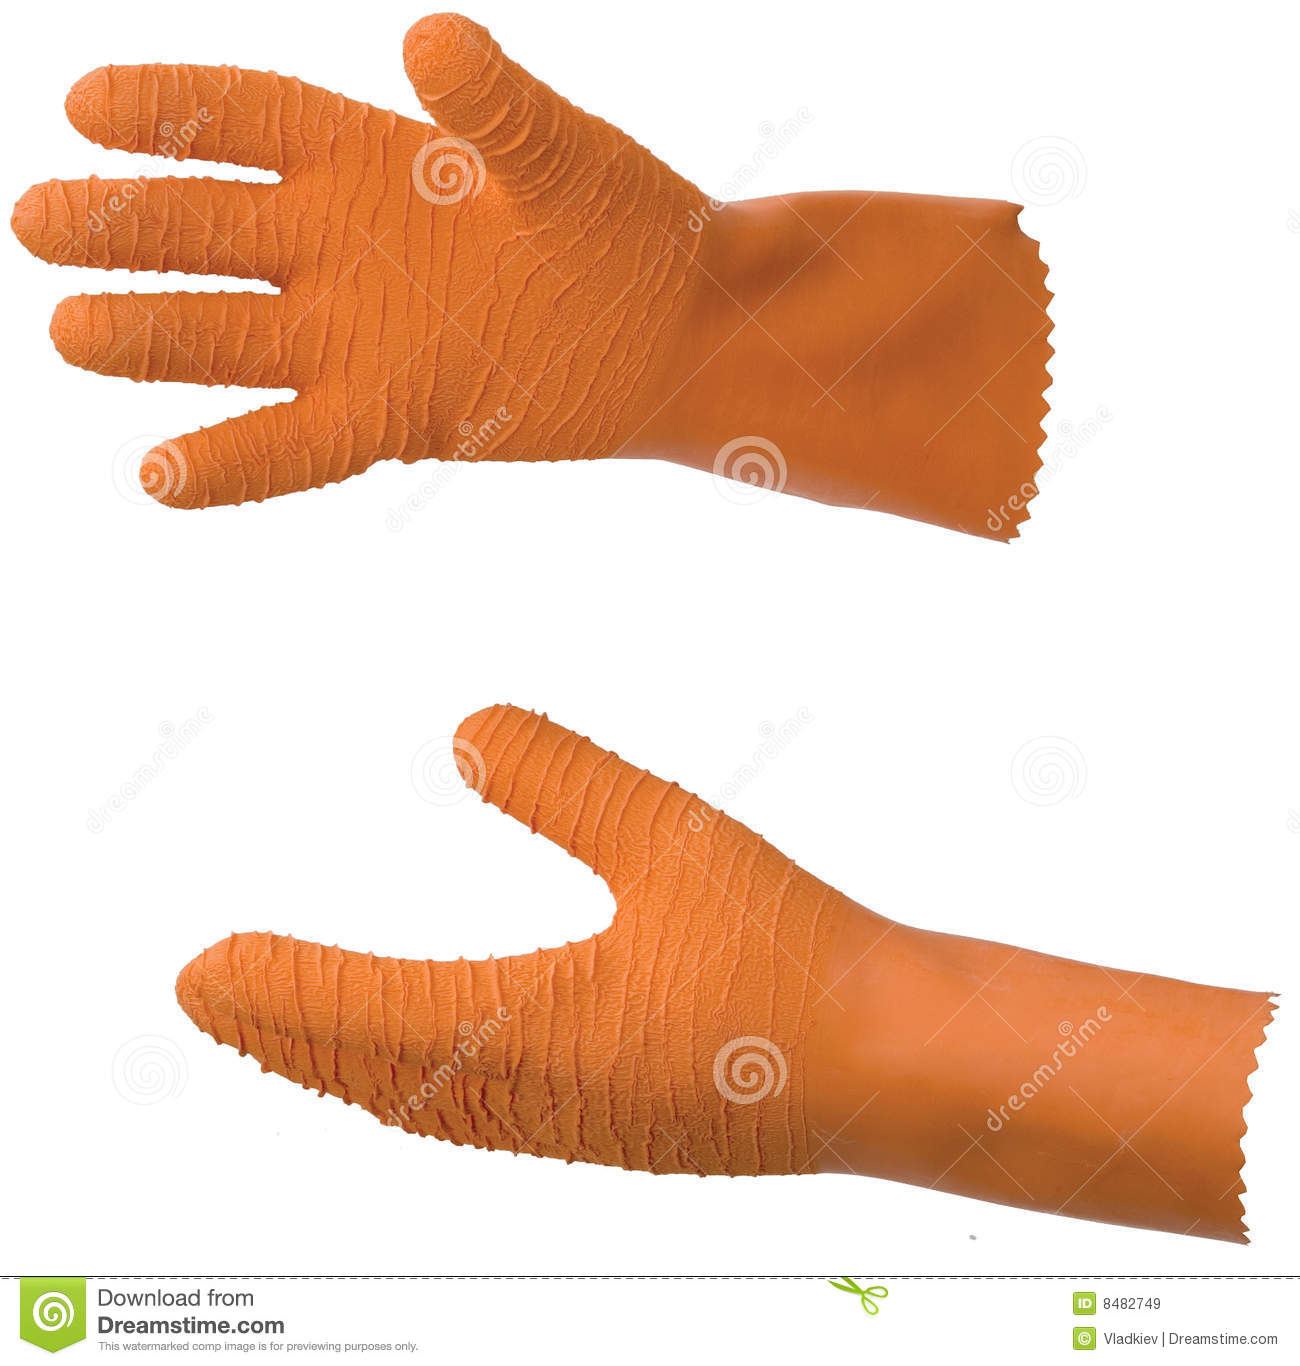 Orange rubber fisherman gloves royalty free stock images for Fish cleaning gloves